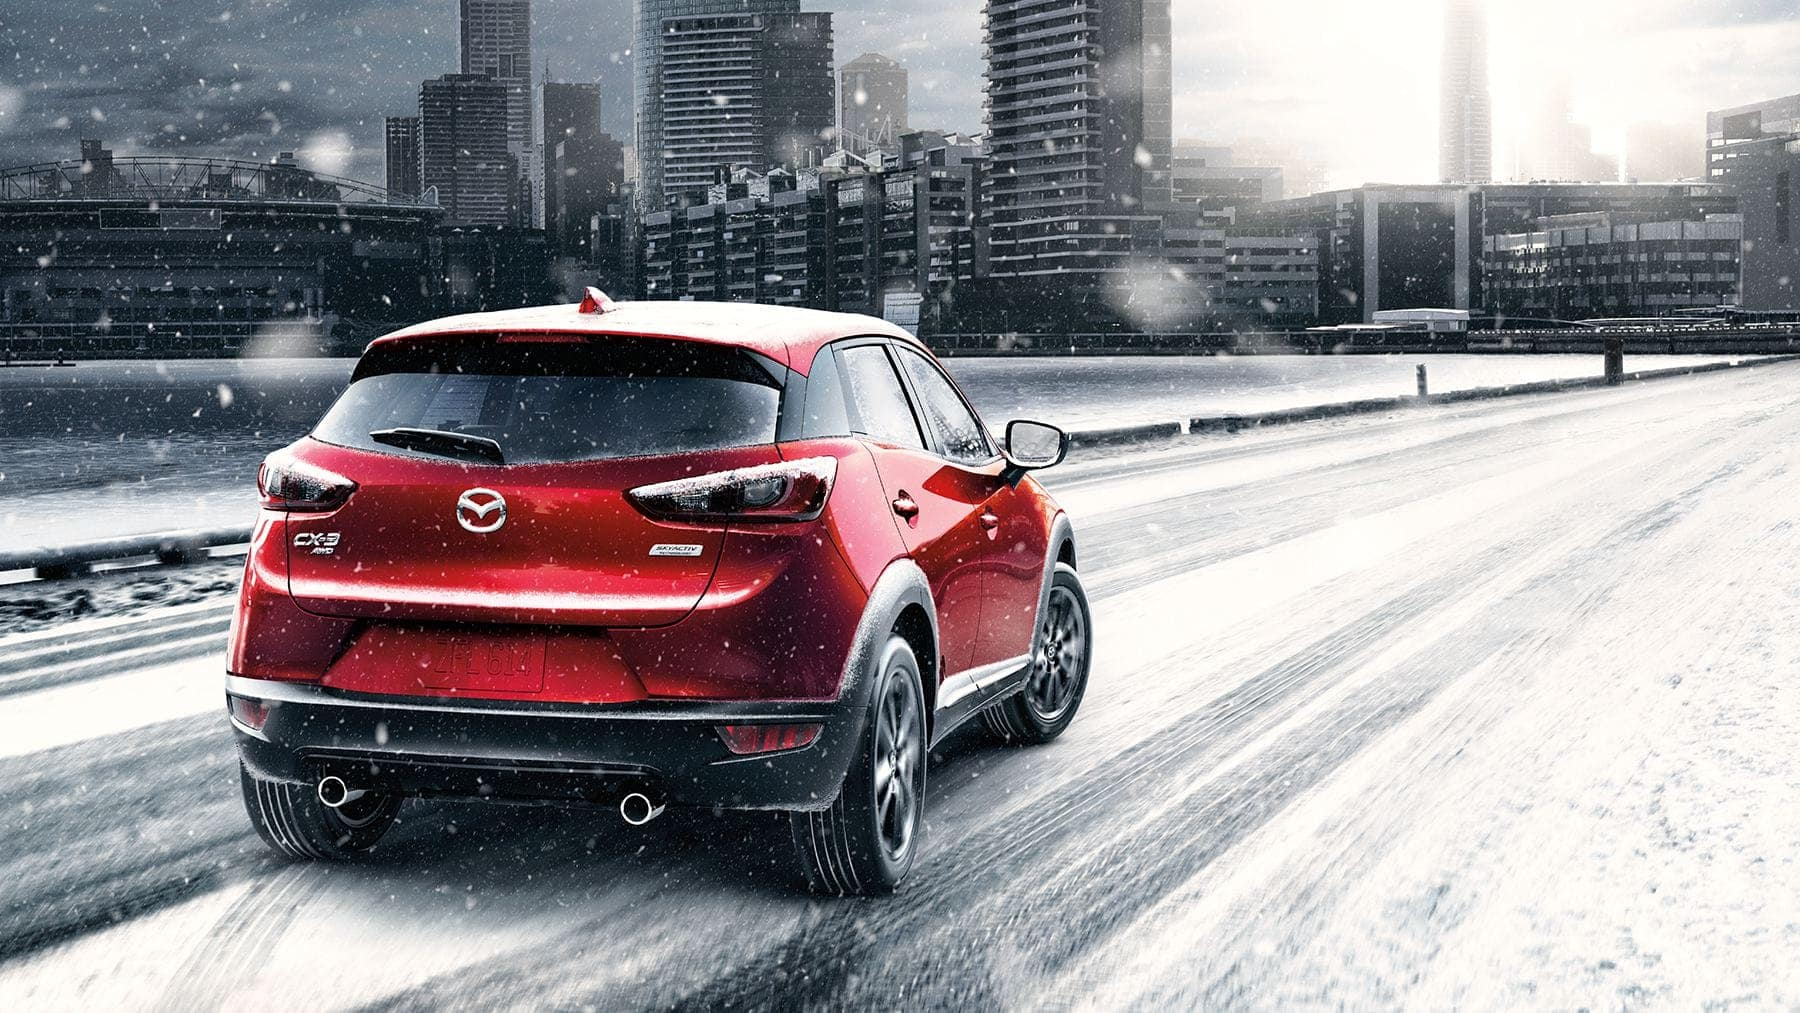 2016 CX3 soulred winter